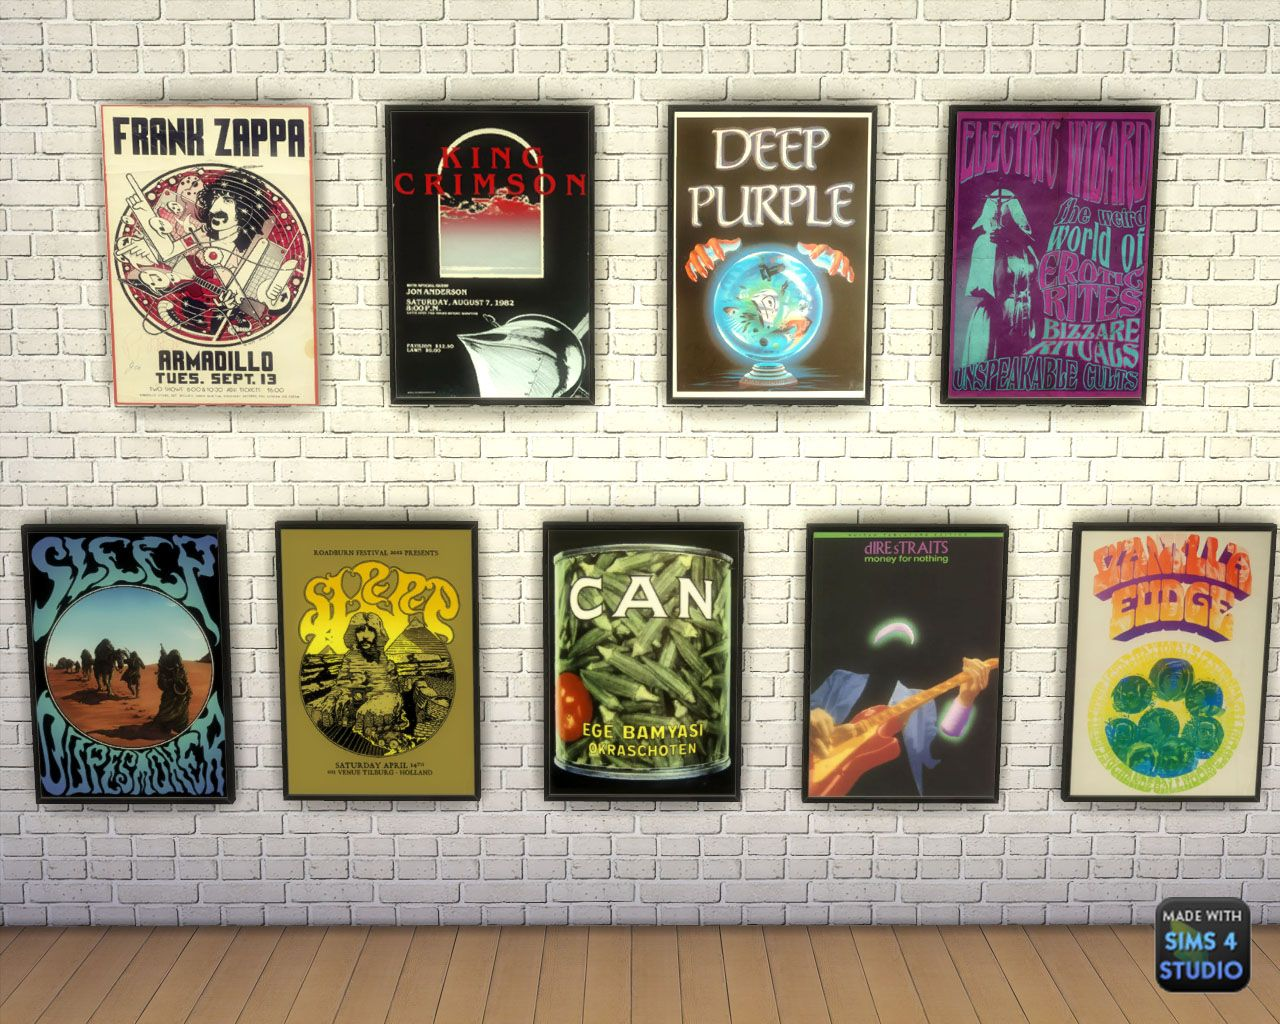 Sims 4 - Rock Posters 25 swatches Mesh by BLACK #s4rocker ...